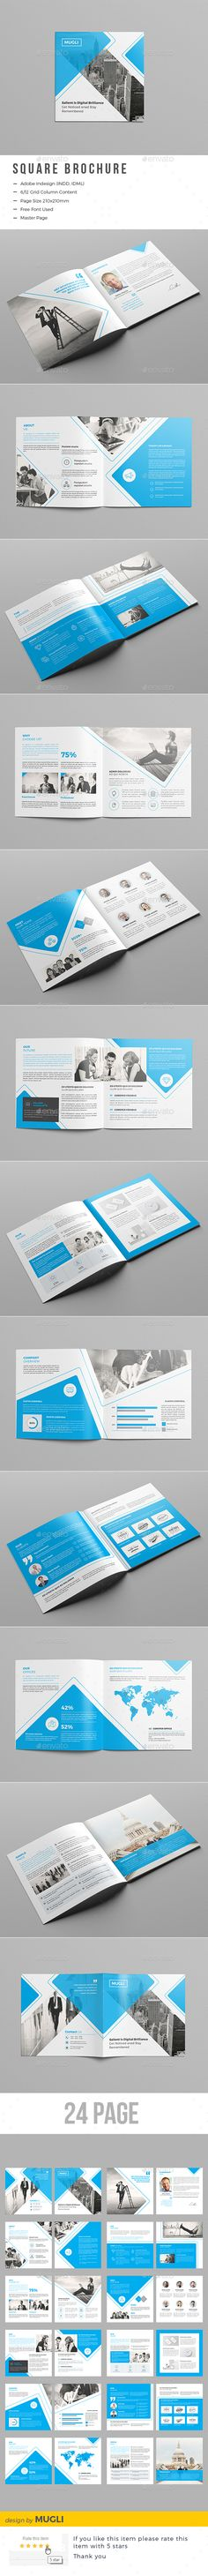 Corporate Square Brochure  InDesign Template • Download ➝ https://graphicriver.net/item/corporate-square-brochure/17141535?ref=pxcr